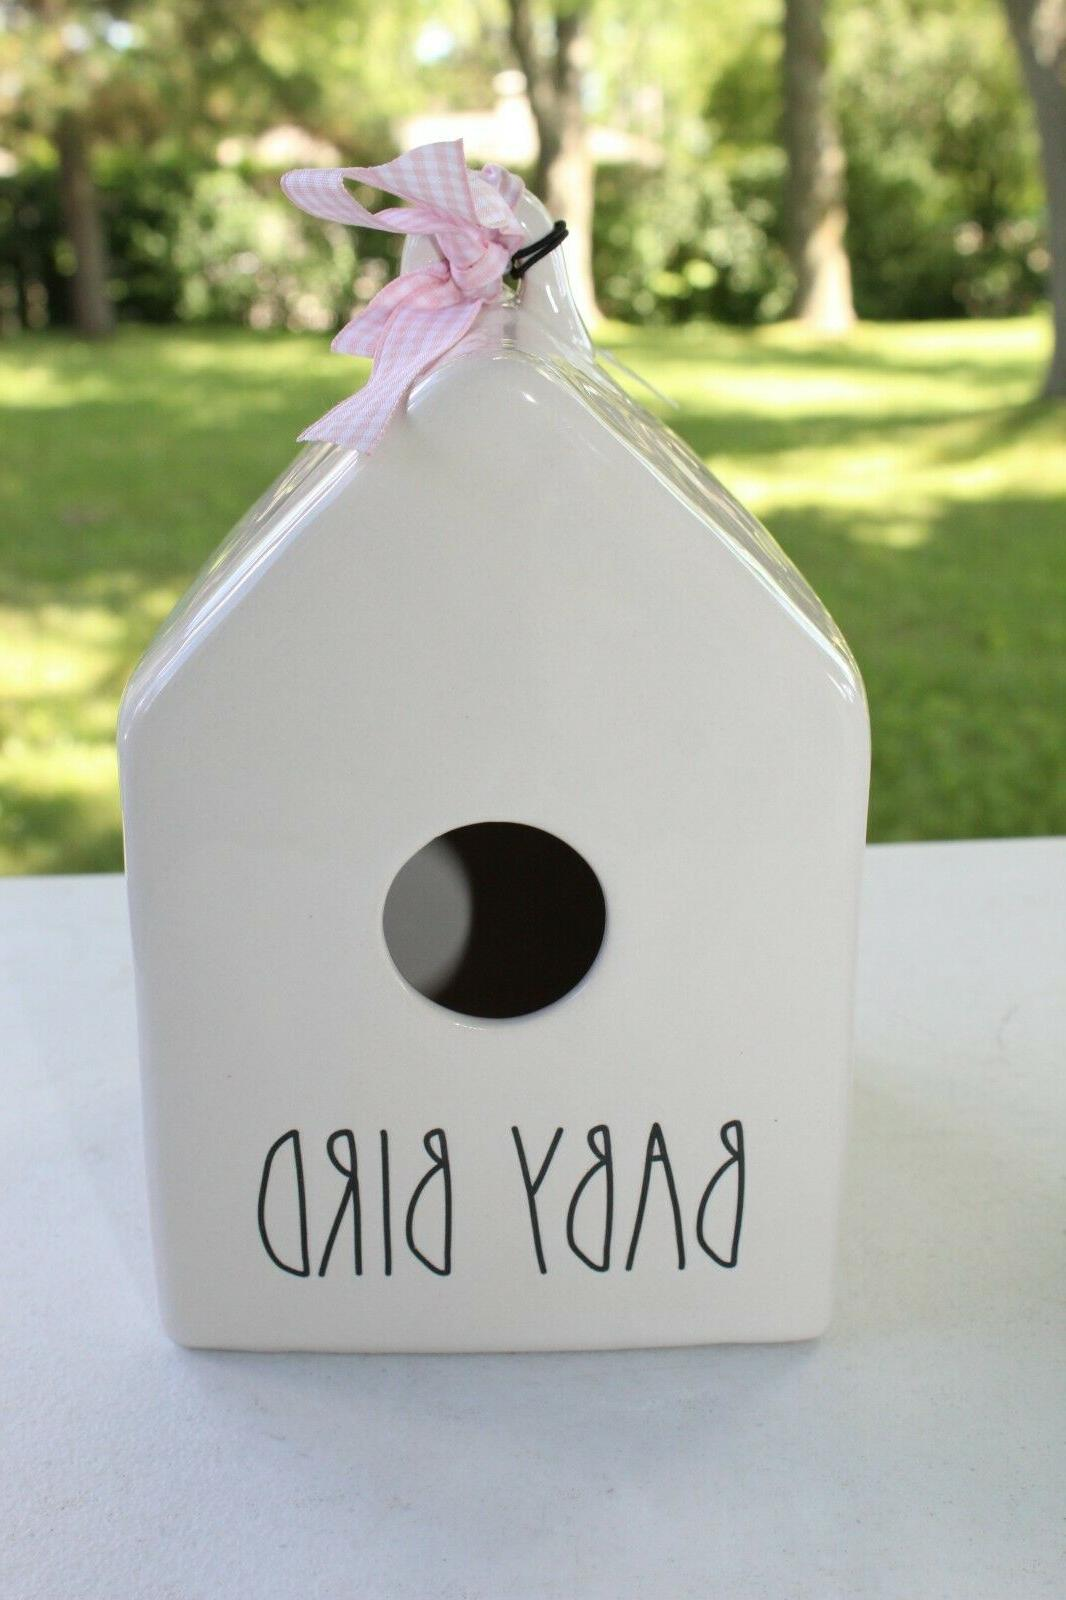 NEW - BABY BIRD - Large Letter Dun house